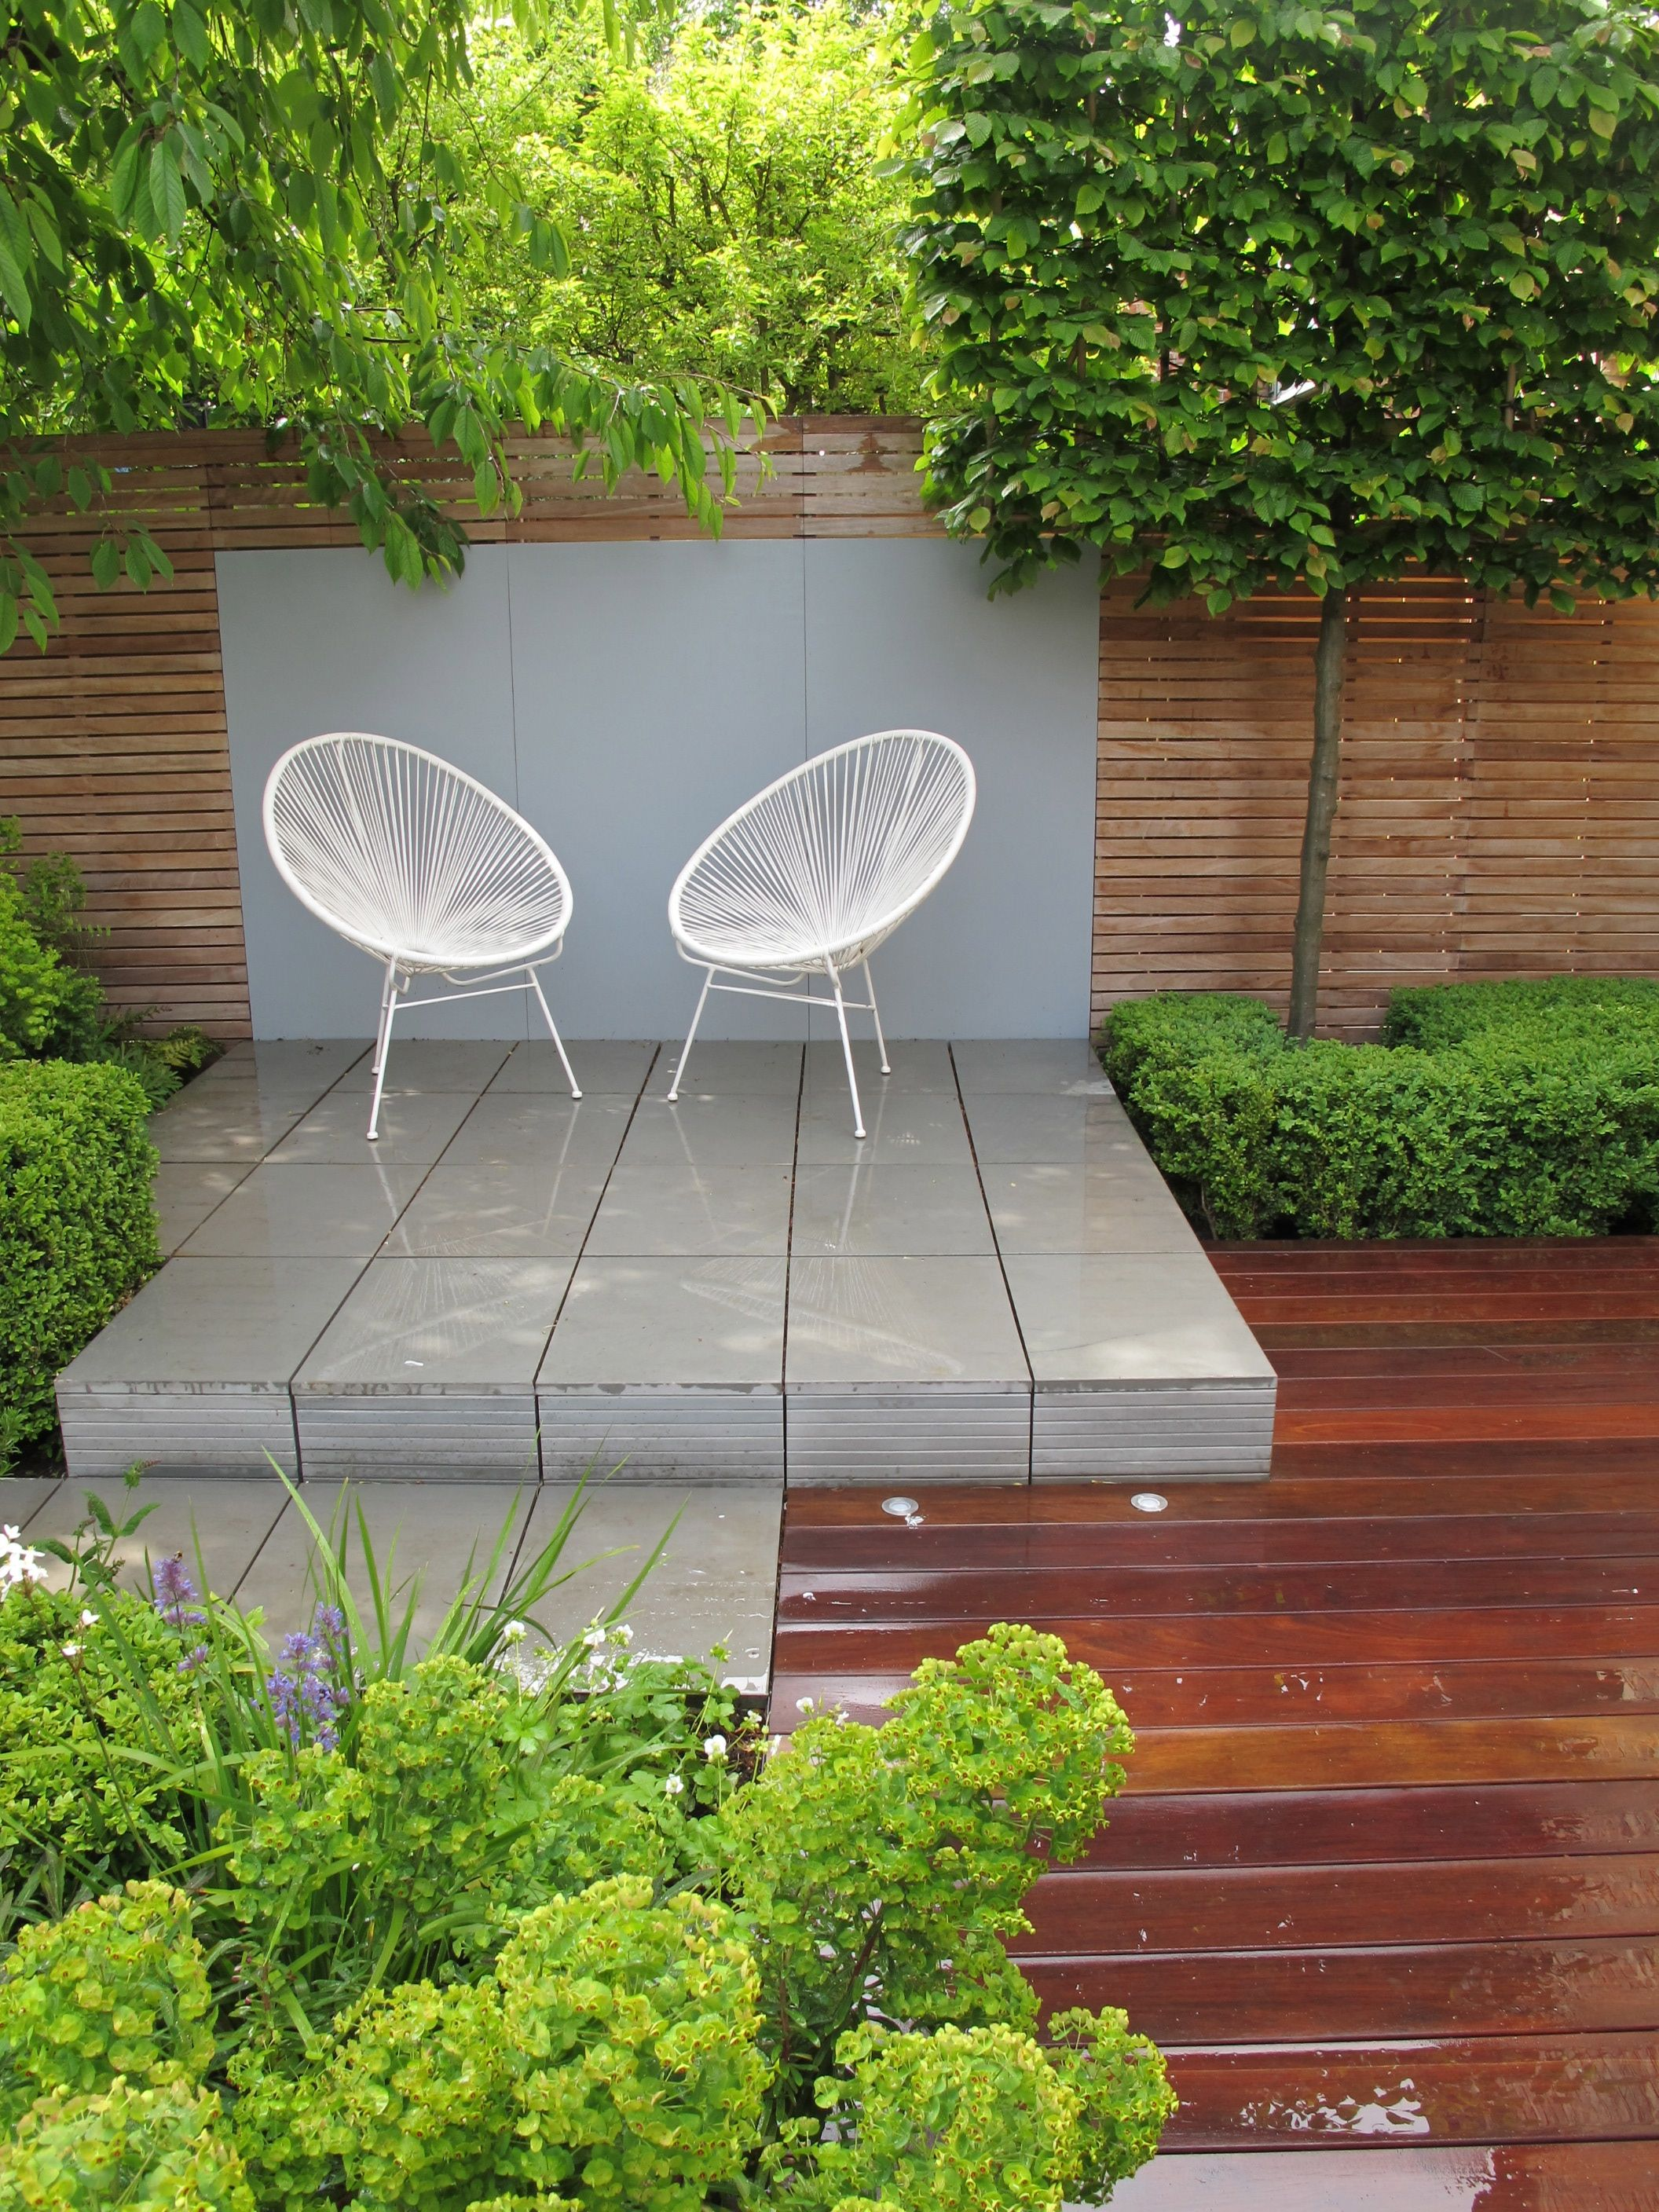 North London garden designed by Lucy Willcox as featured on Alan Titchmarsh s show Love Your